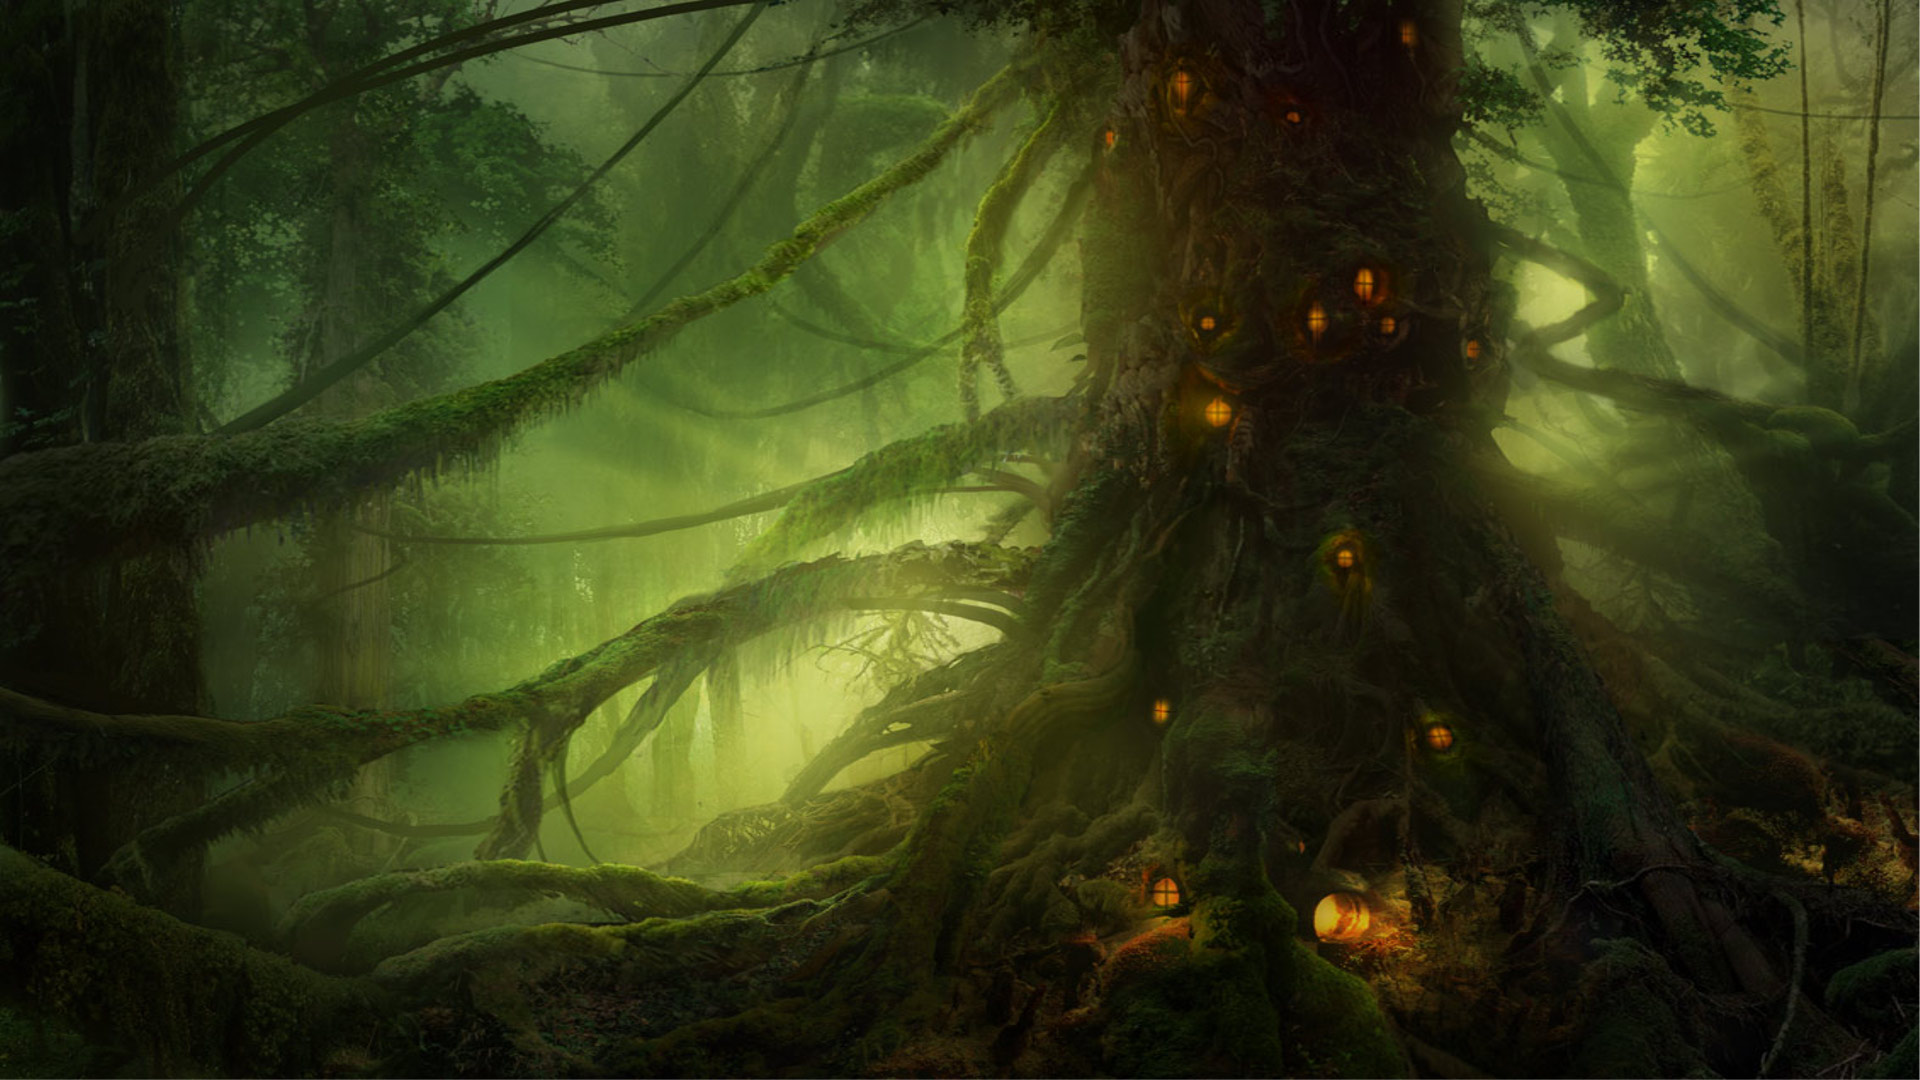 Wallpapers Forest Abstract Anime Art Drawing Fantasy Forest Light 1920x1080